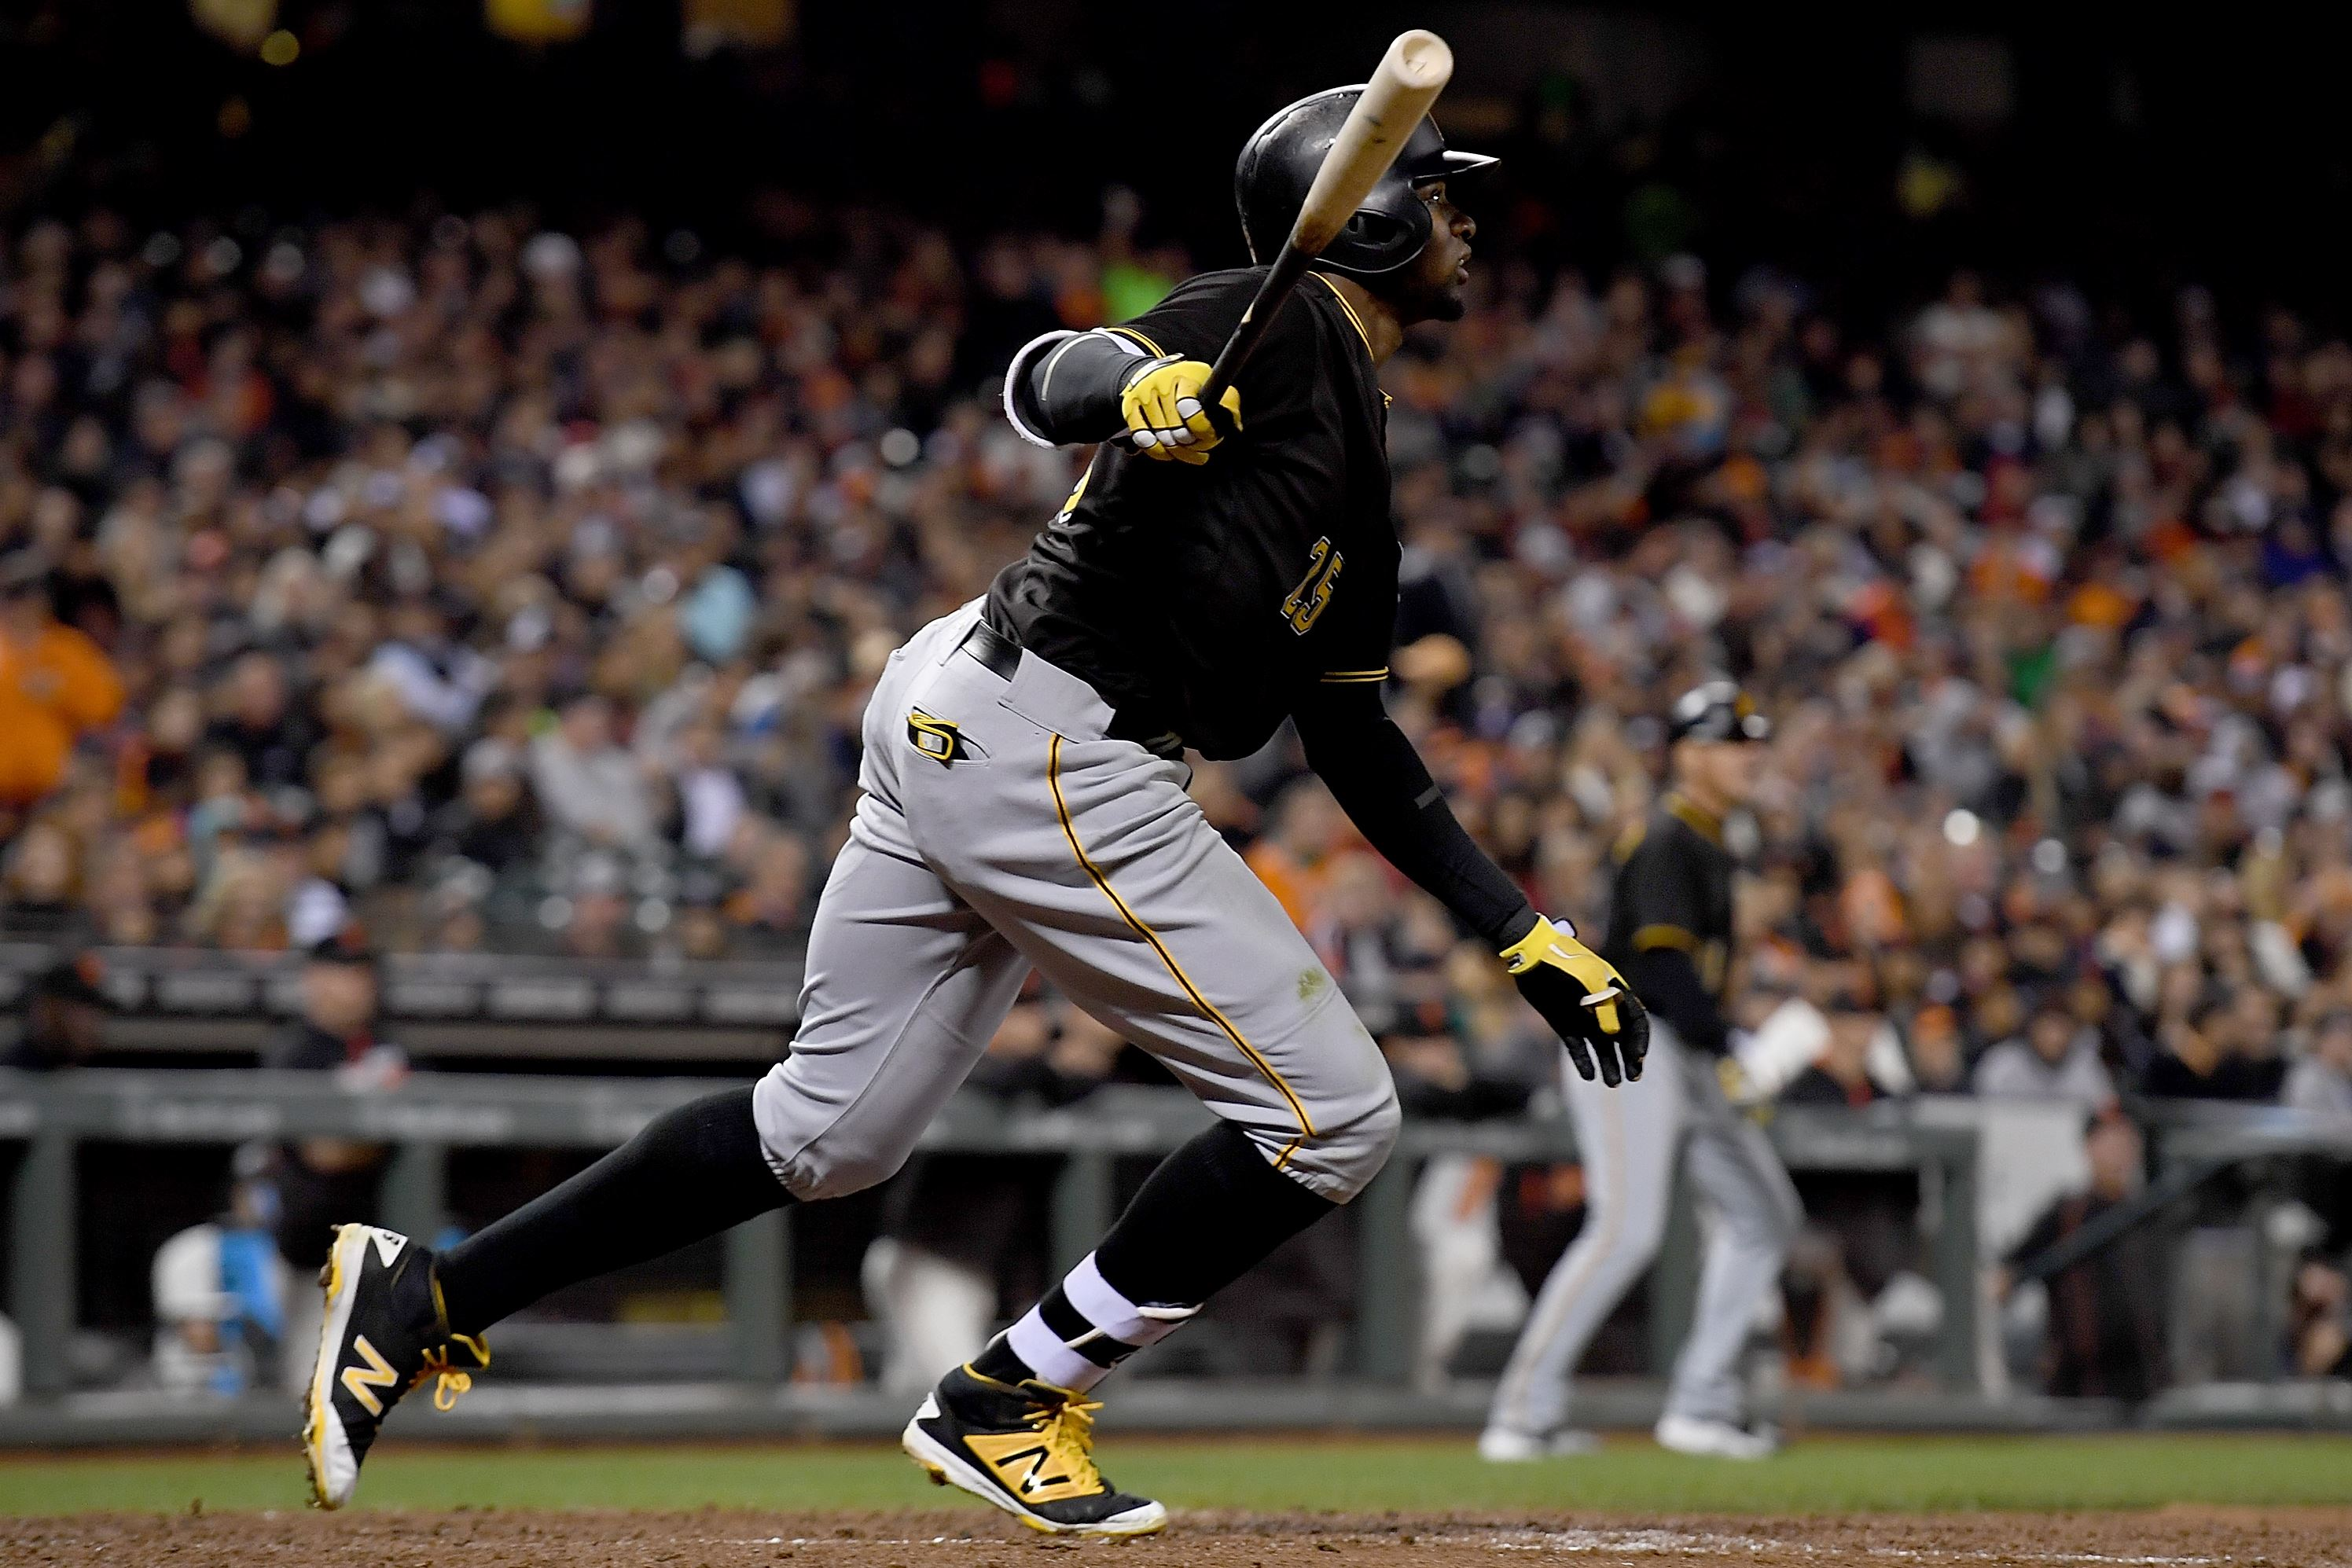 Gregory Polanco's power begins to show up